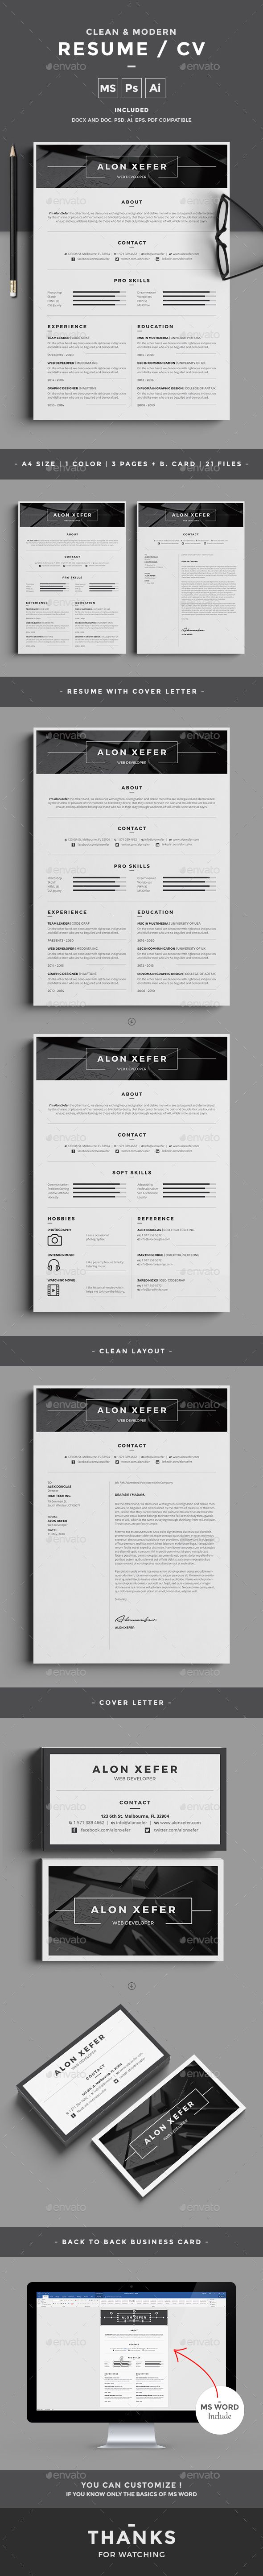 Resume Template PSD, Vector EPS, AI Illustrator, MS Word | Graphic ...